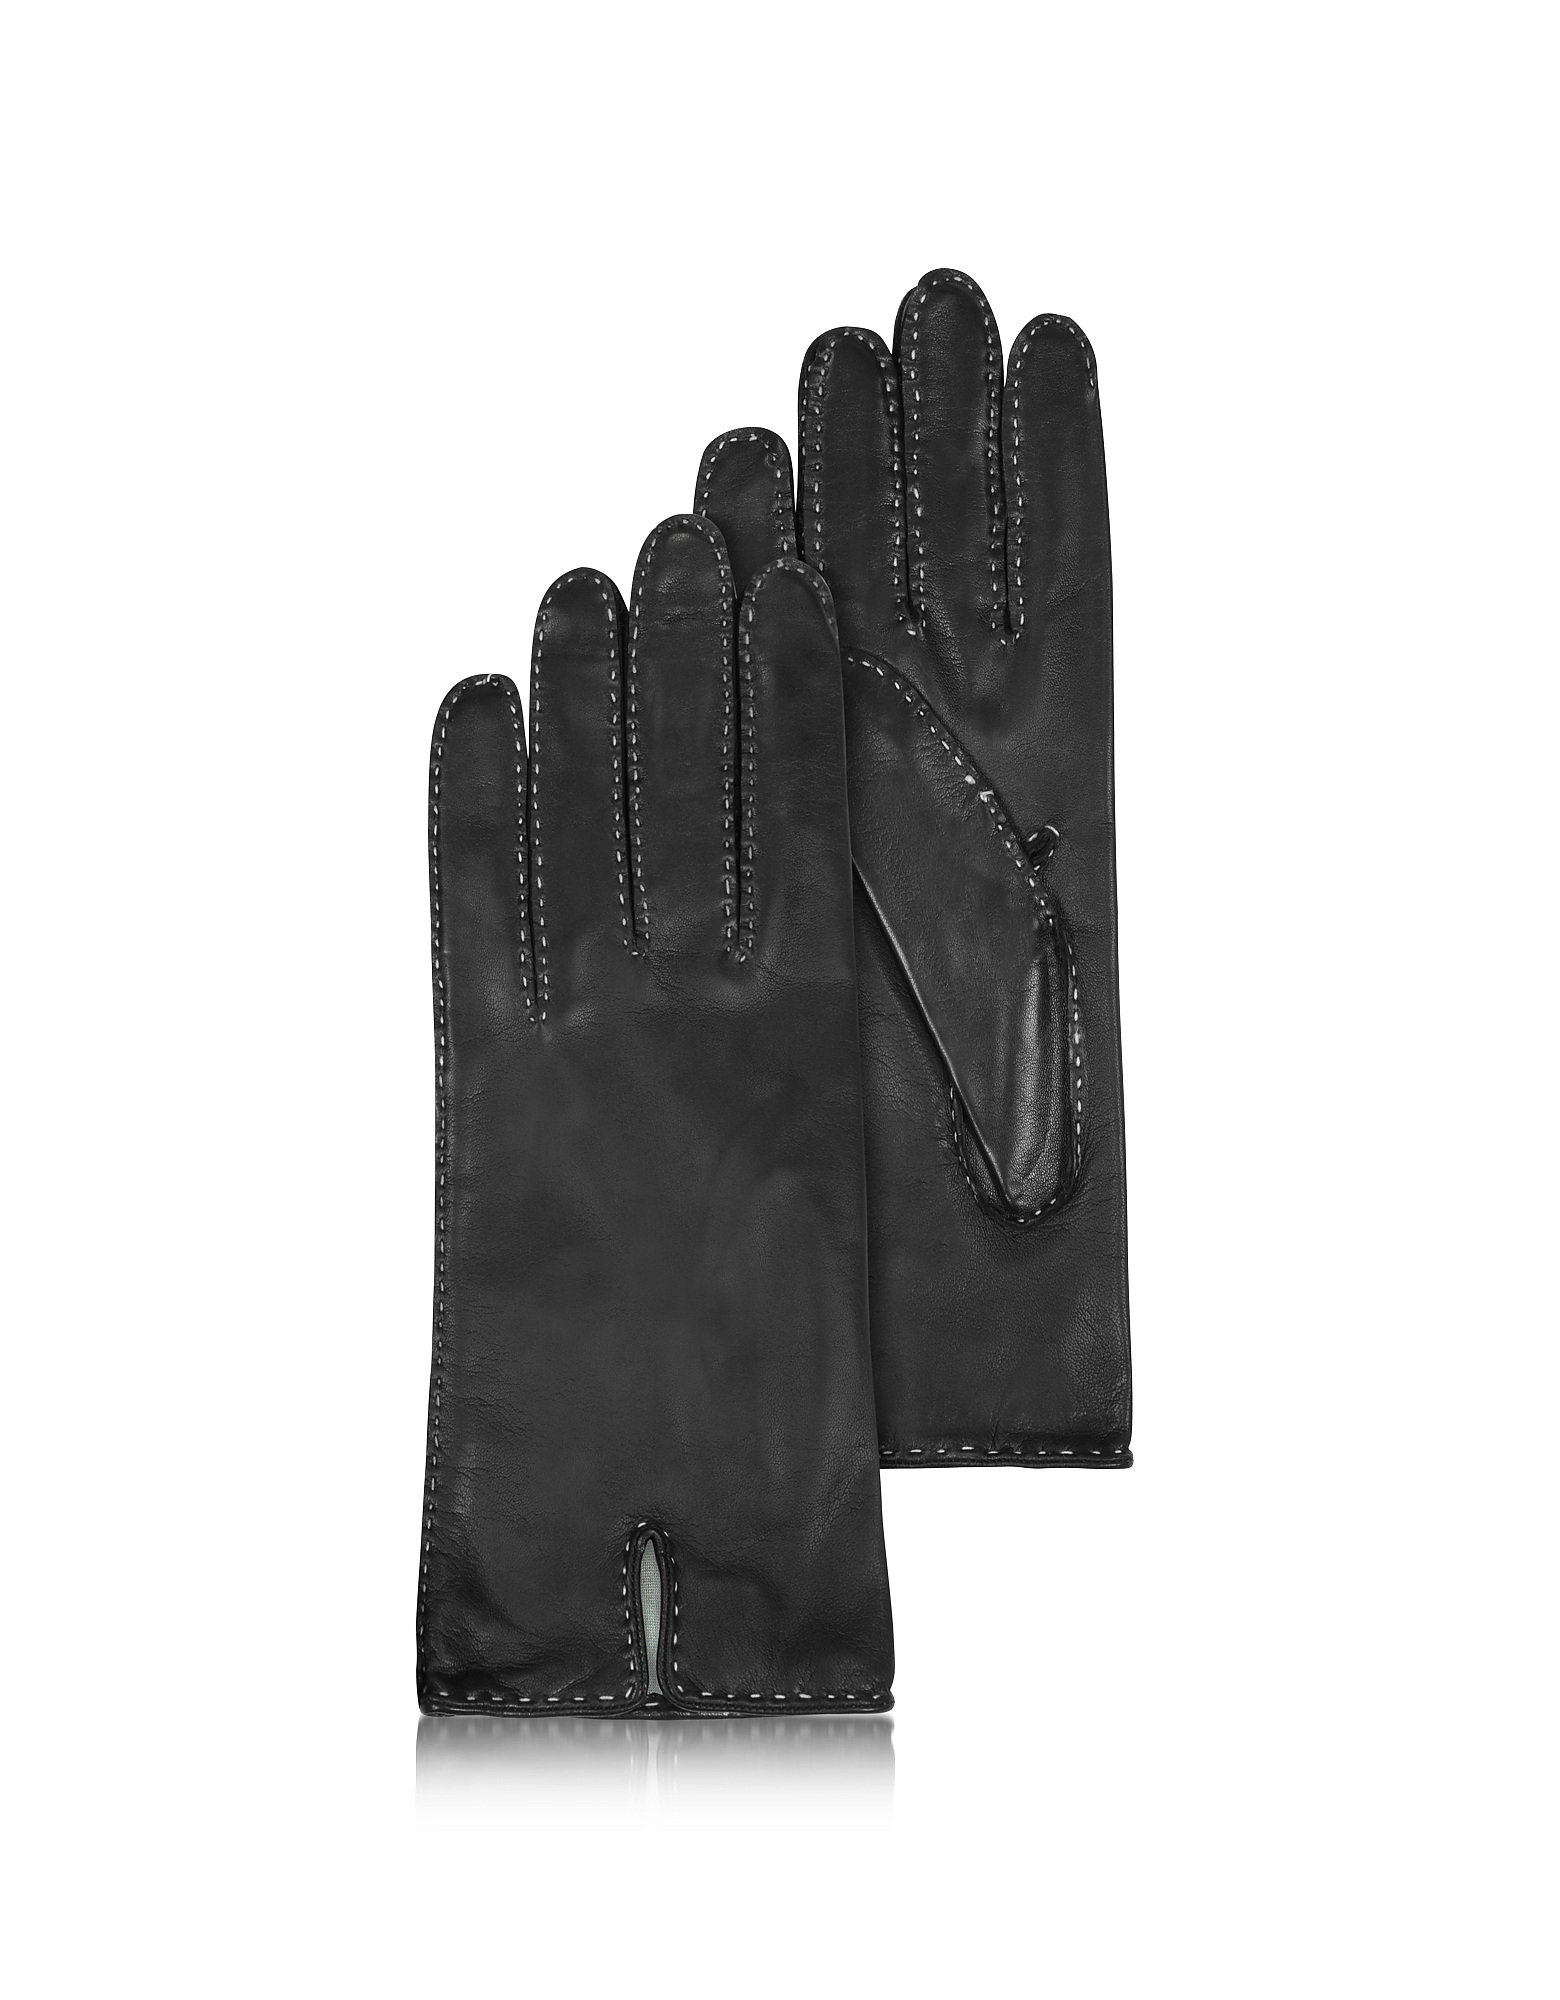 Forzieri Designer Women's Gloves, Women's Stitched Silk Lined Black Italian Leather Gloves